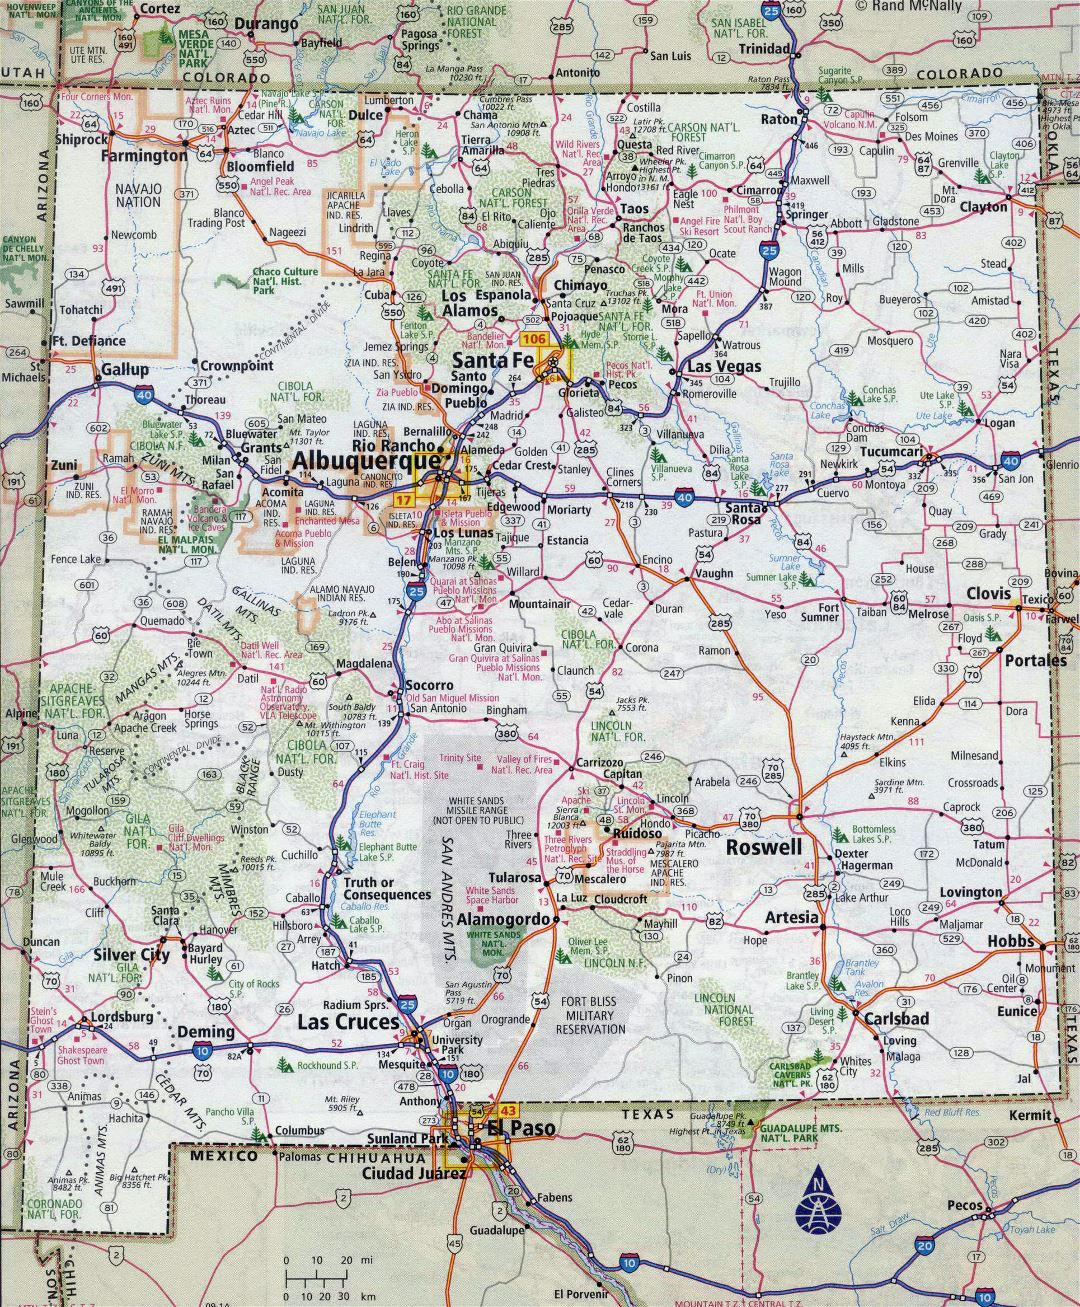 Large detailed roads and highways map of New Mexico state with all cities